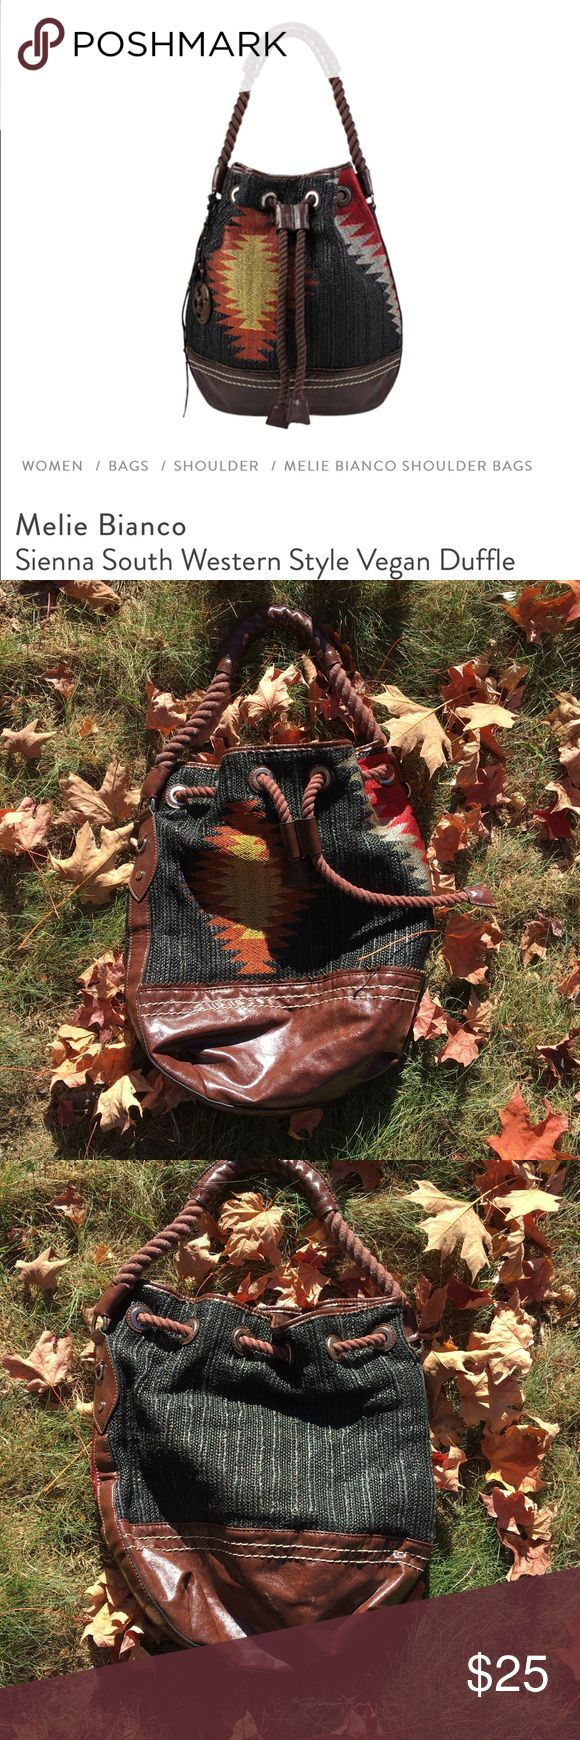 Melie Bianco Soutwest Hobo Bag The perfect bag for fall.  Trendy tribal print bag with awesome fall colors. 🍂🍁🍂🍁🍂 Melie Bianco Bags Hobos